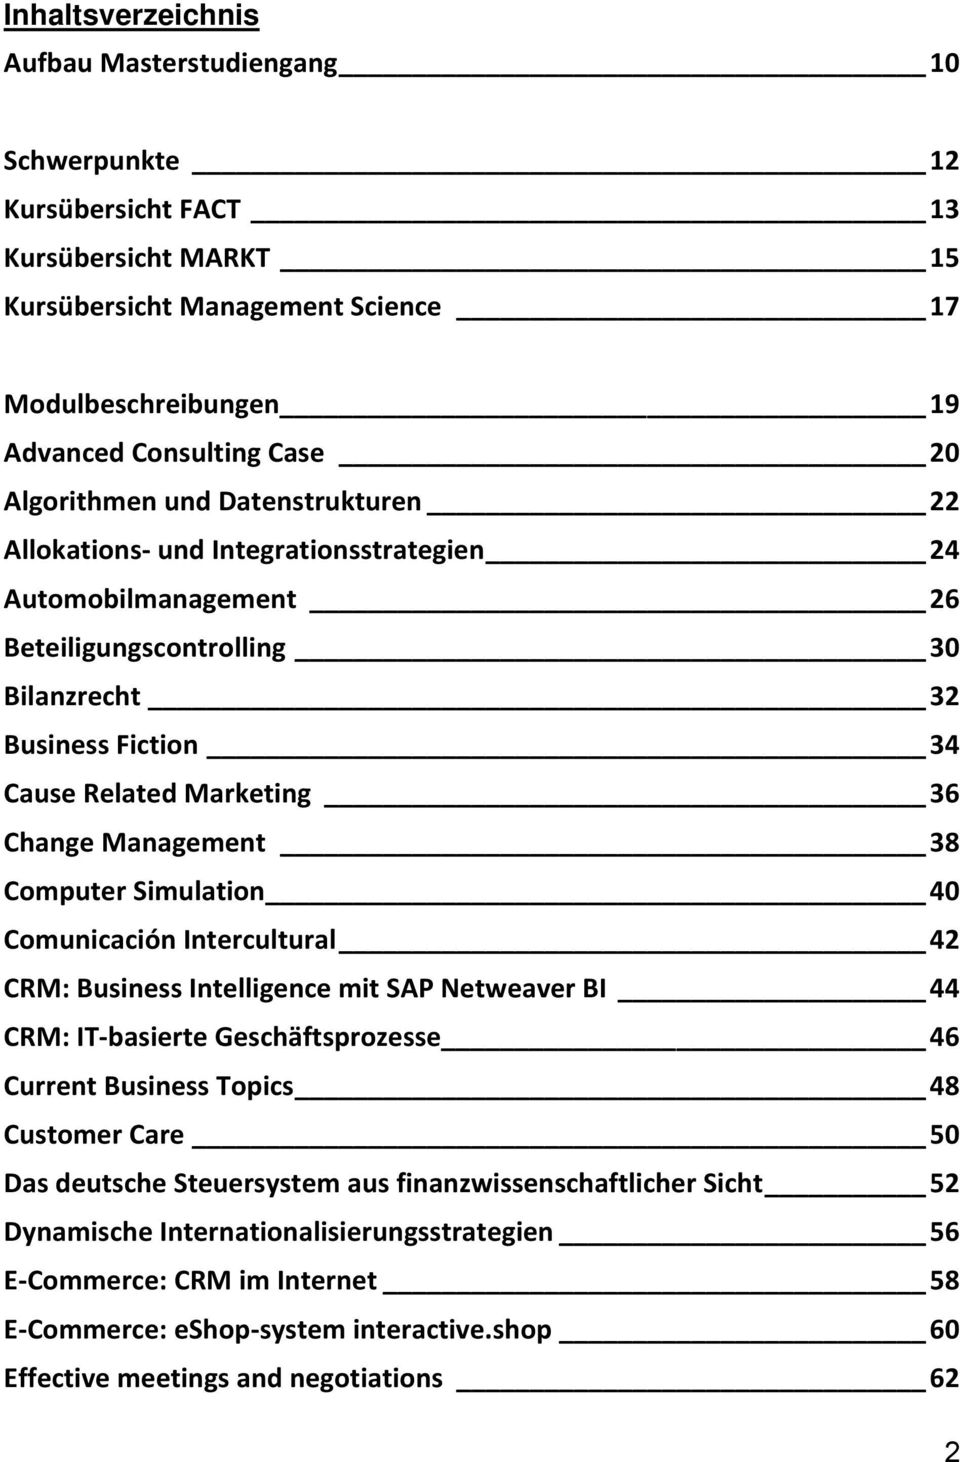 Management 38 Computer Simulation 40 Comunicación Intercultural 42 CRM: Business Intelligence mit SAP Netweaver BI 44 CRM: IT basierte Geschäftsprozesse 46 Current Business Topics 48 Customer Care 50